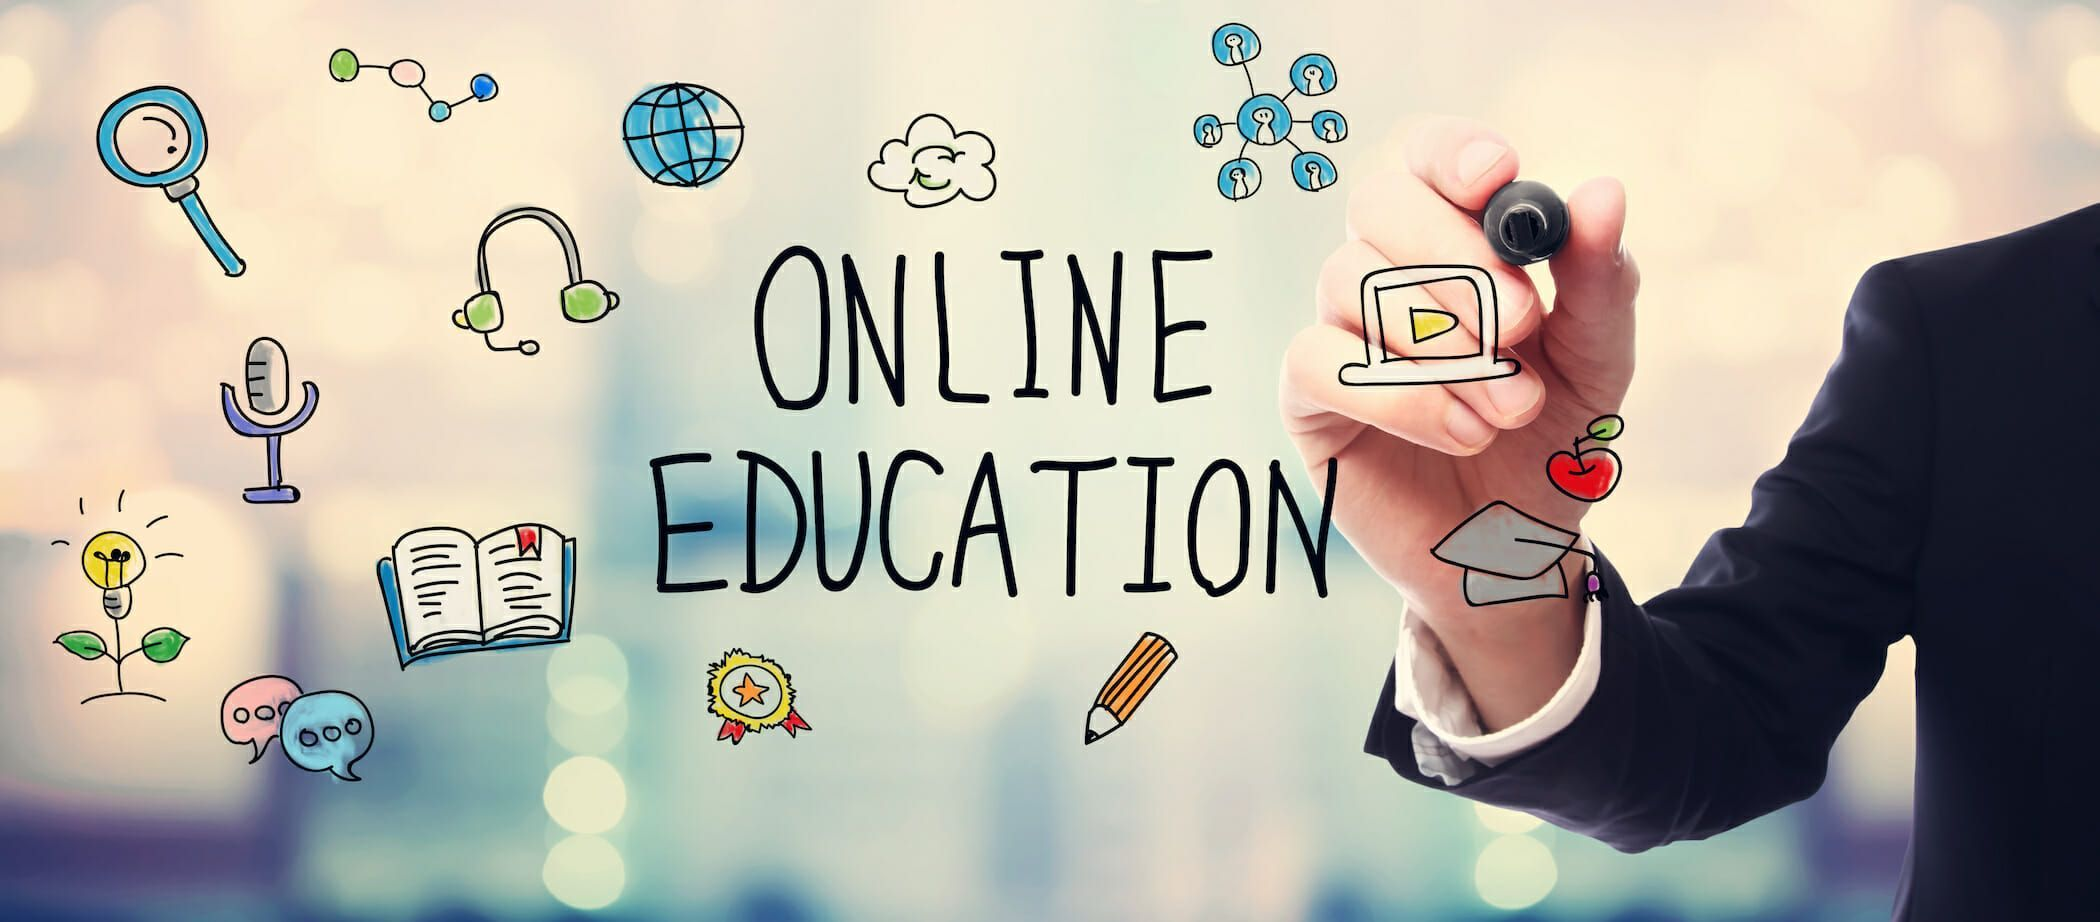 Online Learning - Education